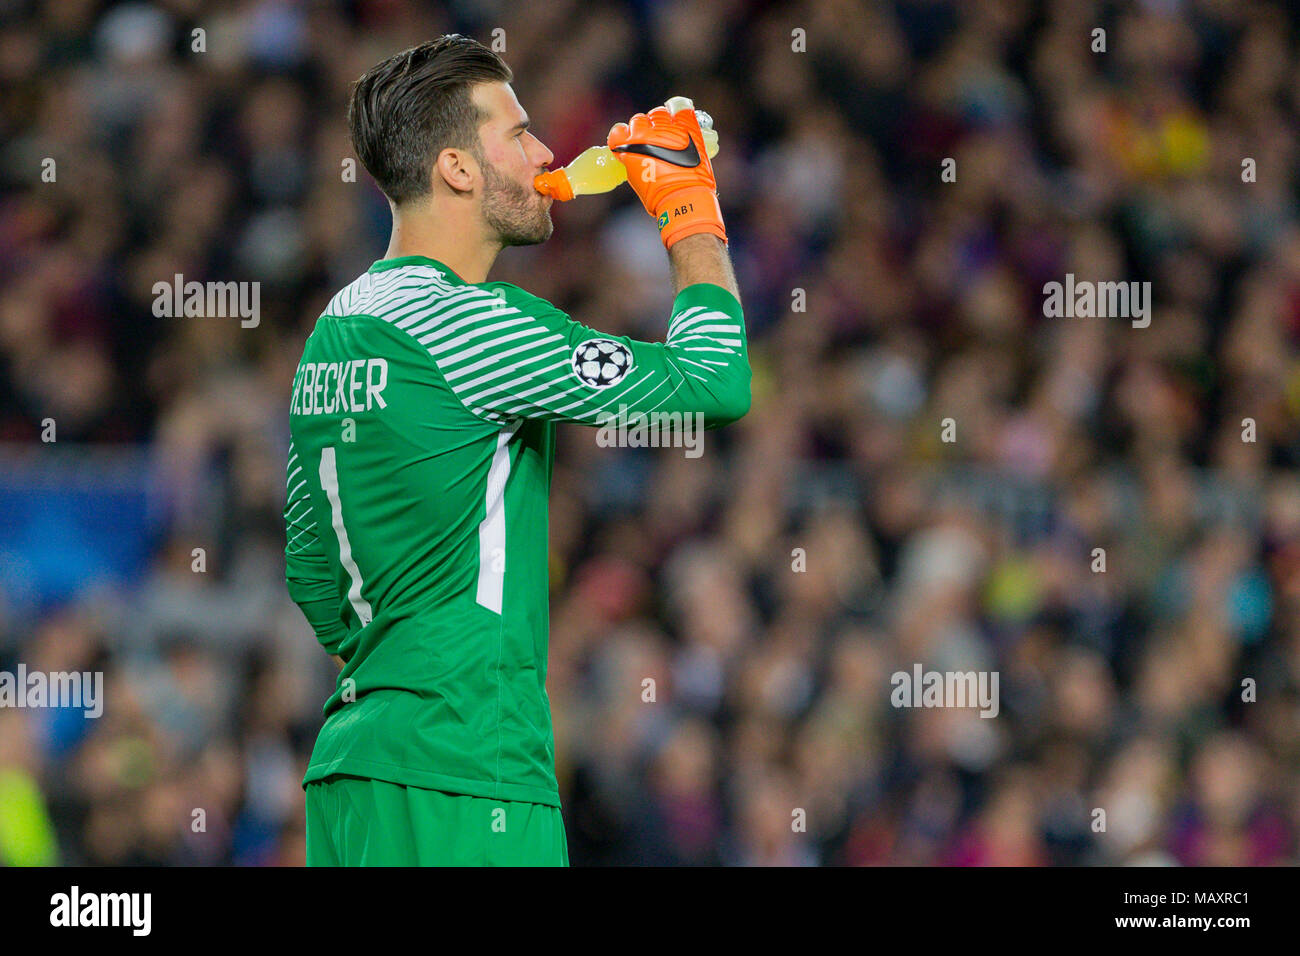 6fabd3b1c AS Roma goalkeeper Alisson Becker (1) during the UEFA Champions League match  between FC